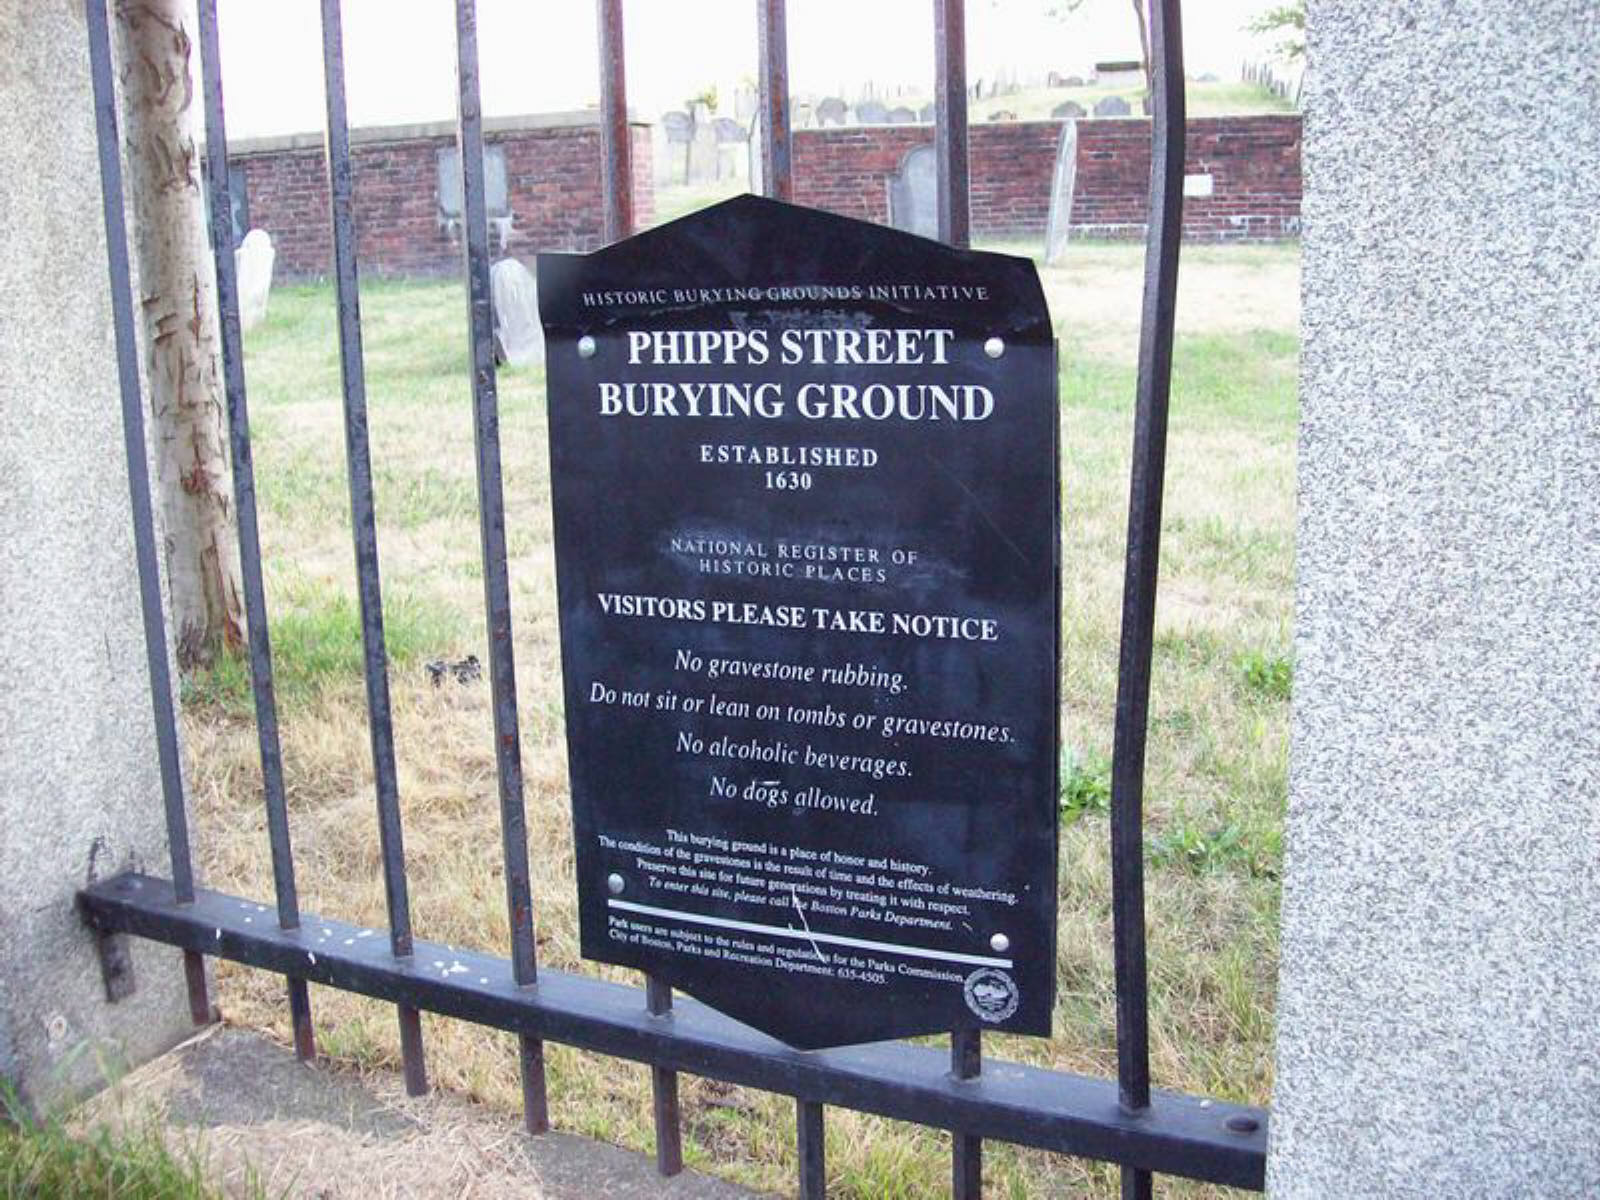 Phipps Street Burying Ground